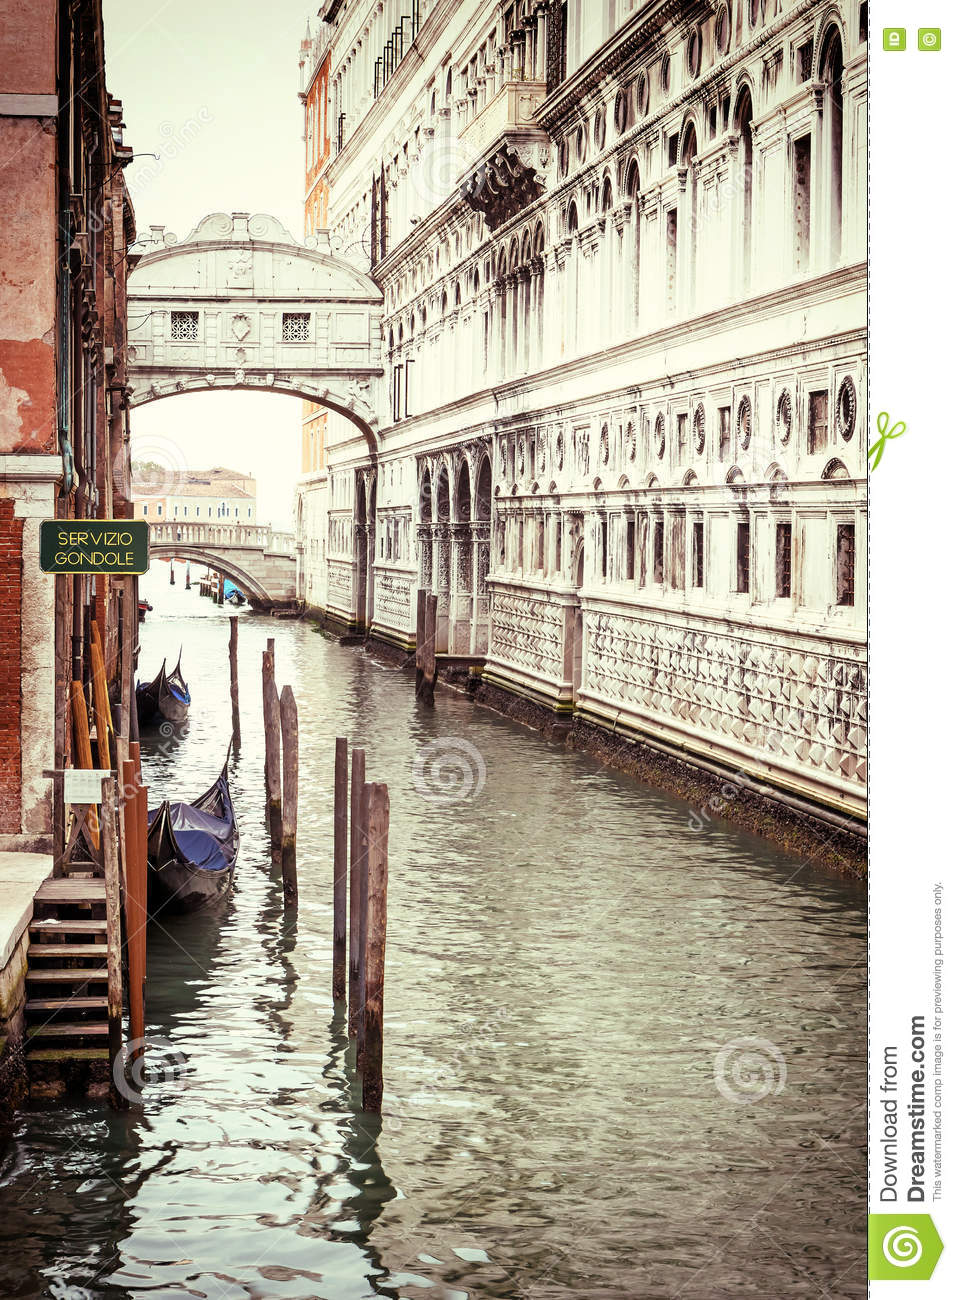 Vintage photo of the Bridge of Sighs in Venice